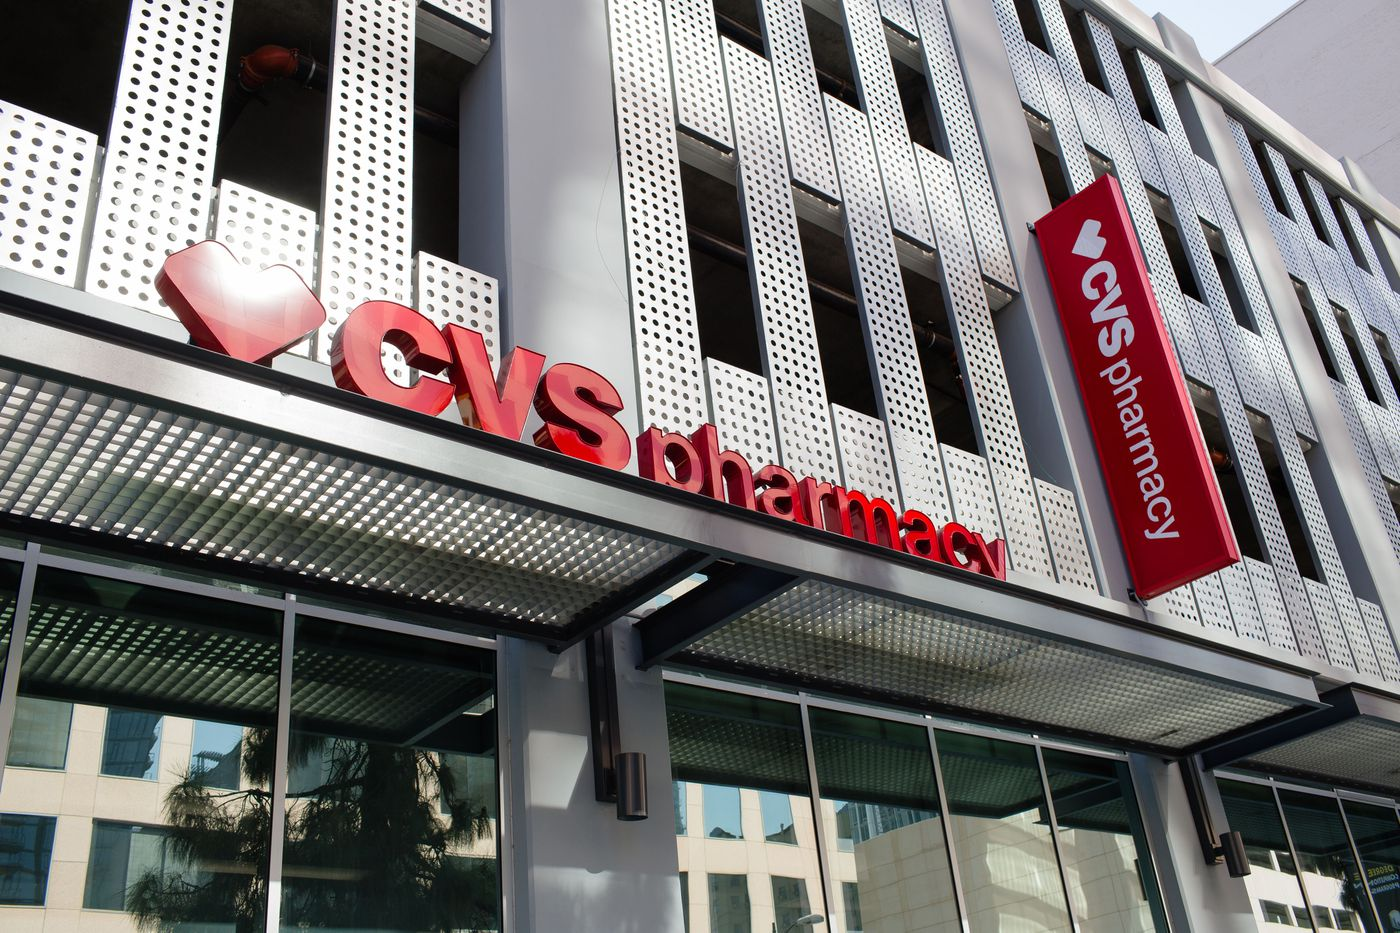 The Department of Justice has approved the merger of CVS and Aetna